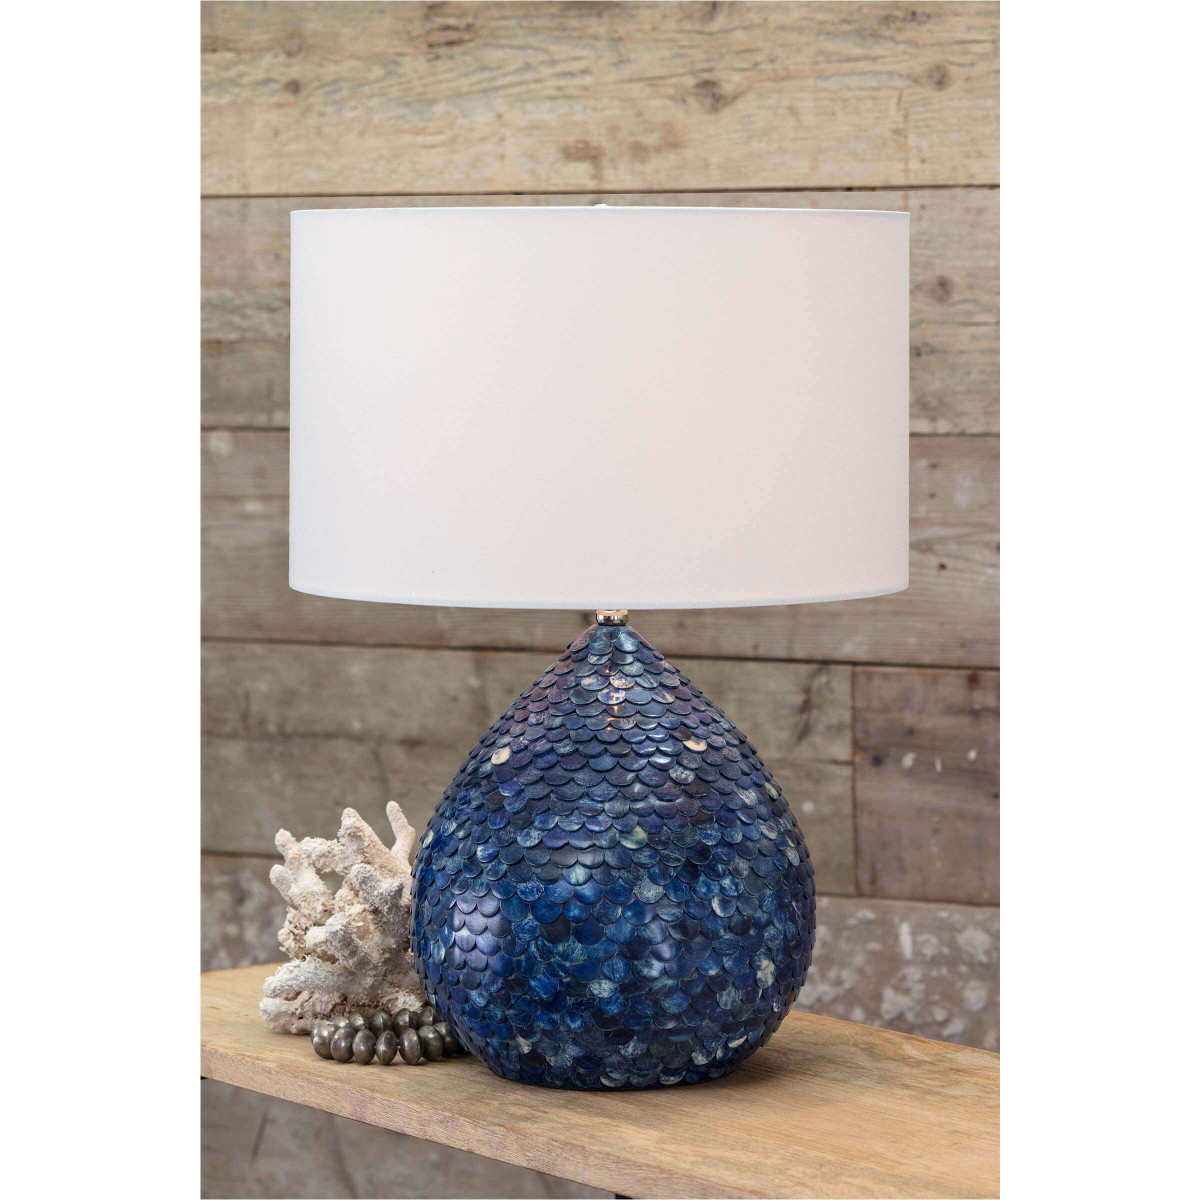 Indigo Mosaic Table Lamp